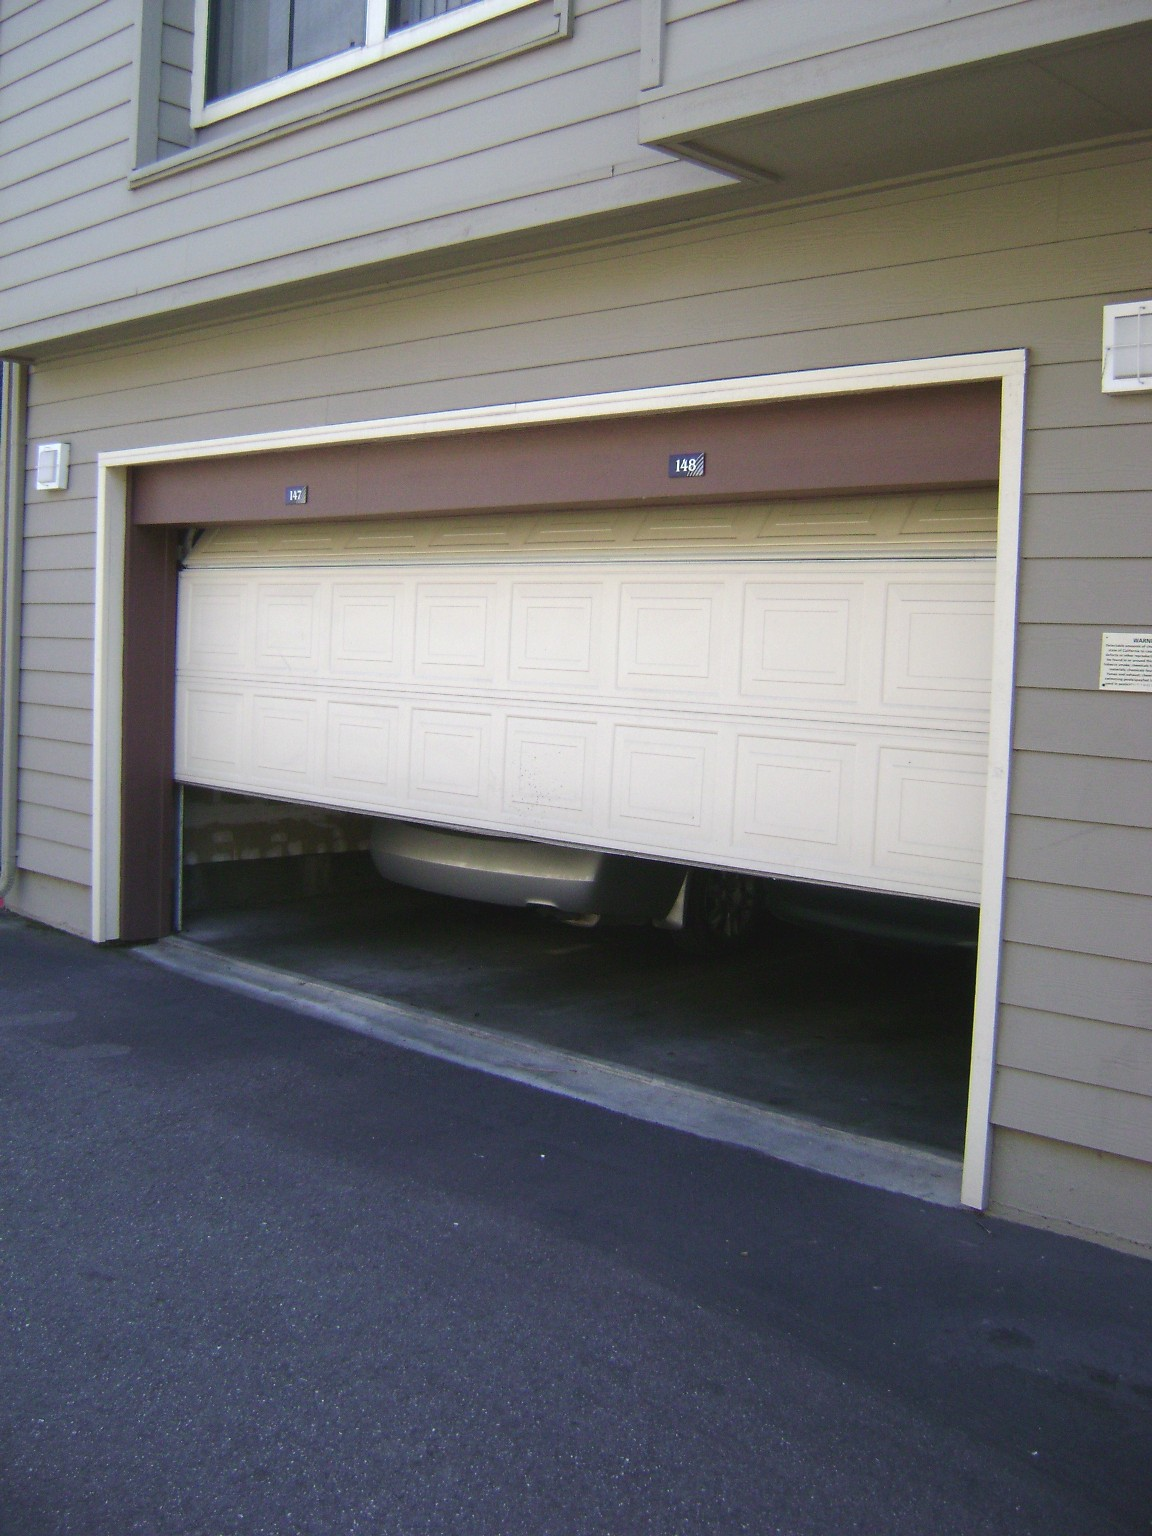 Garage doors open by themselves